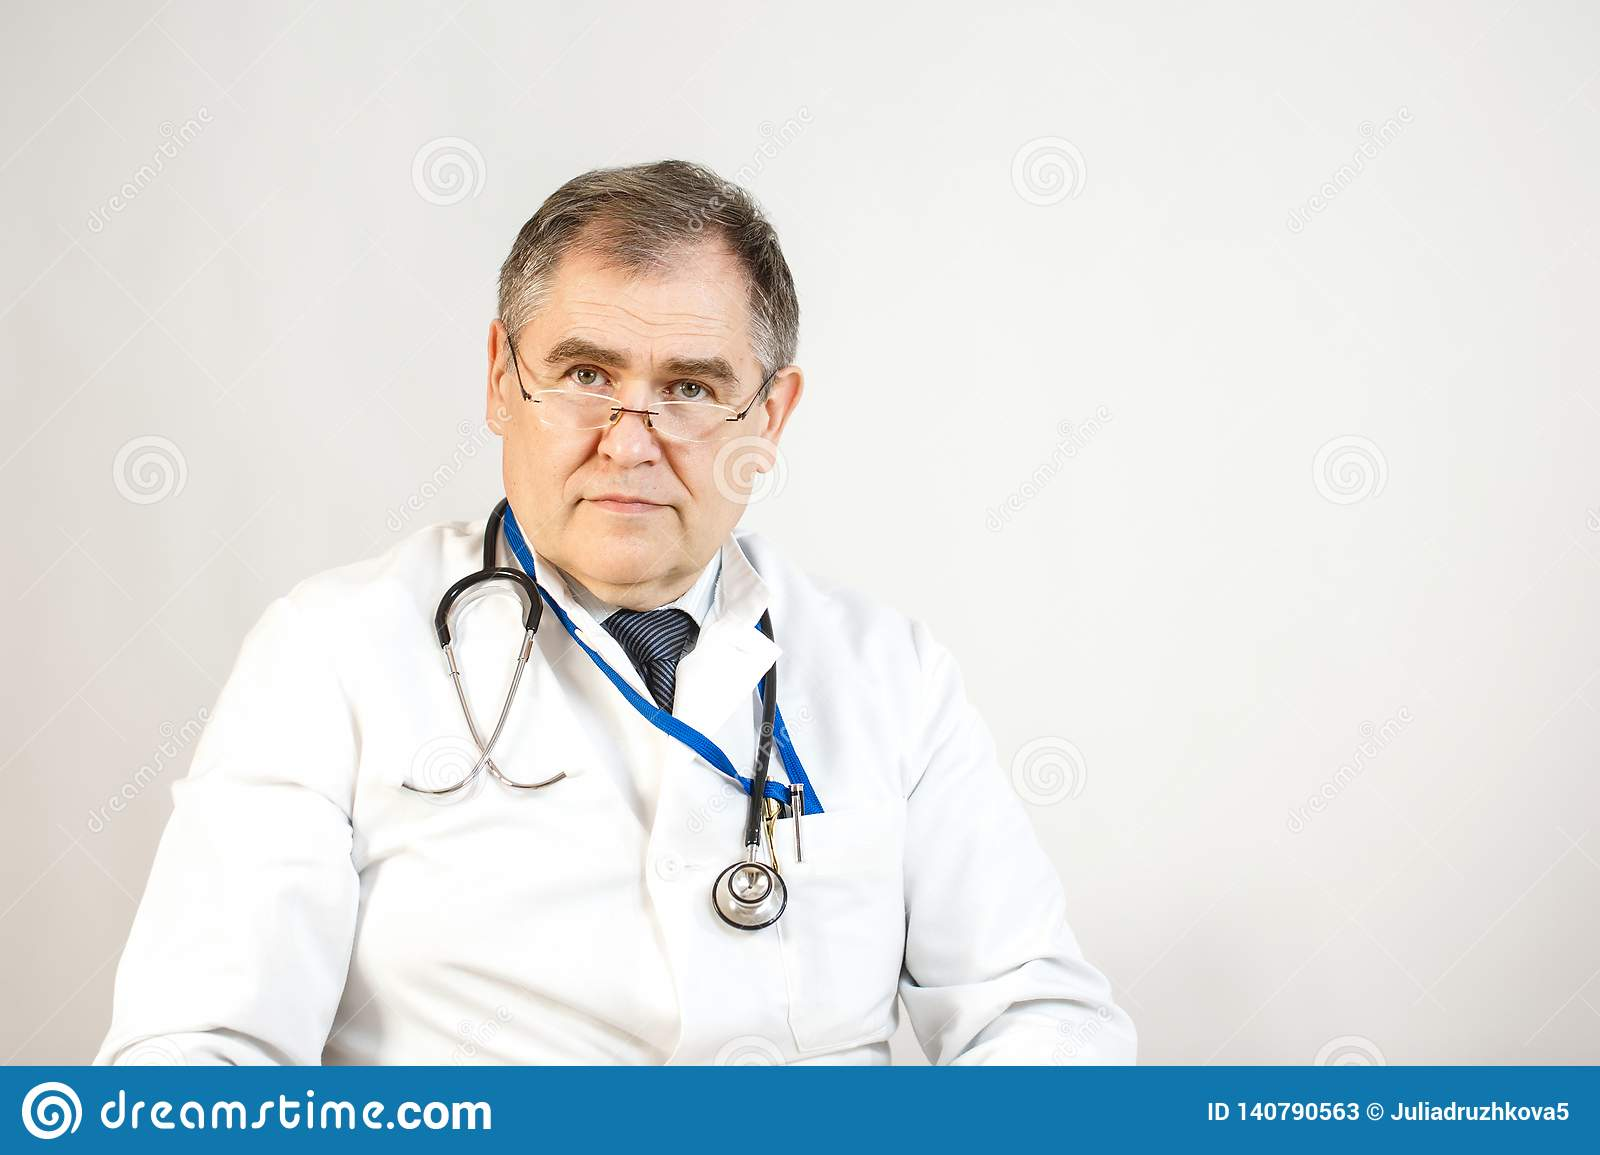 A doctor in a white coat and tie is looking forward, a whist has a stethoscope and a badge on his neck, and there are pens in his